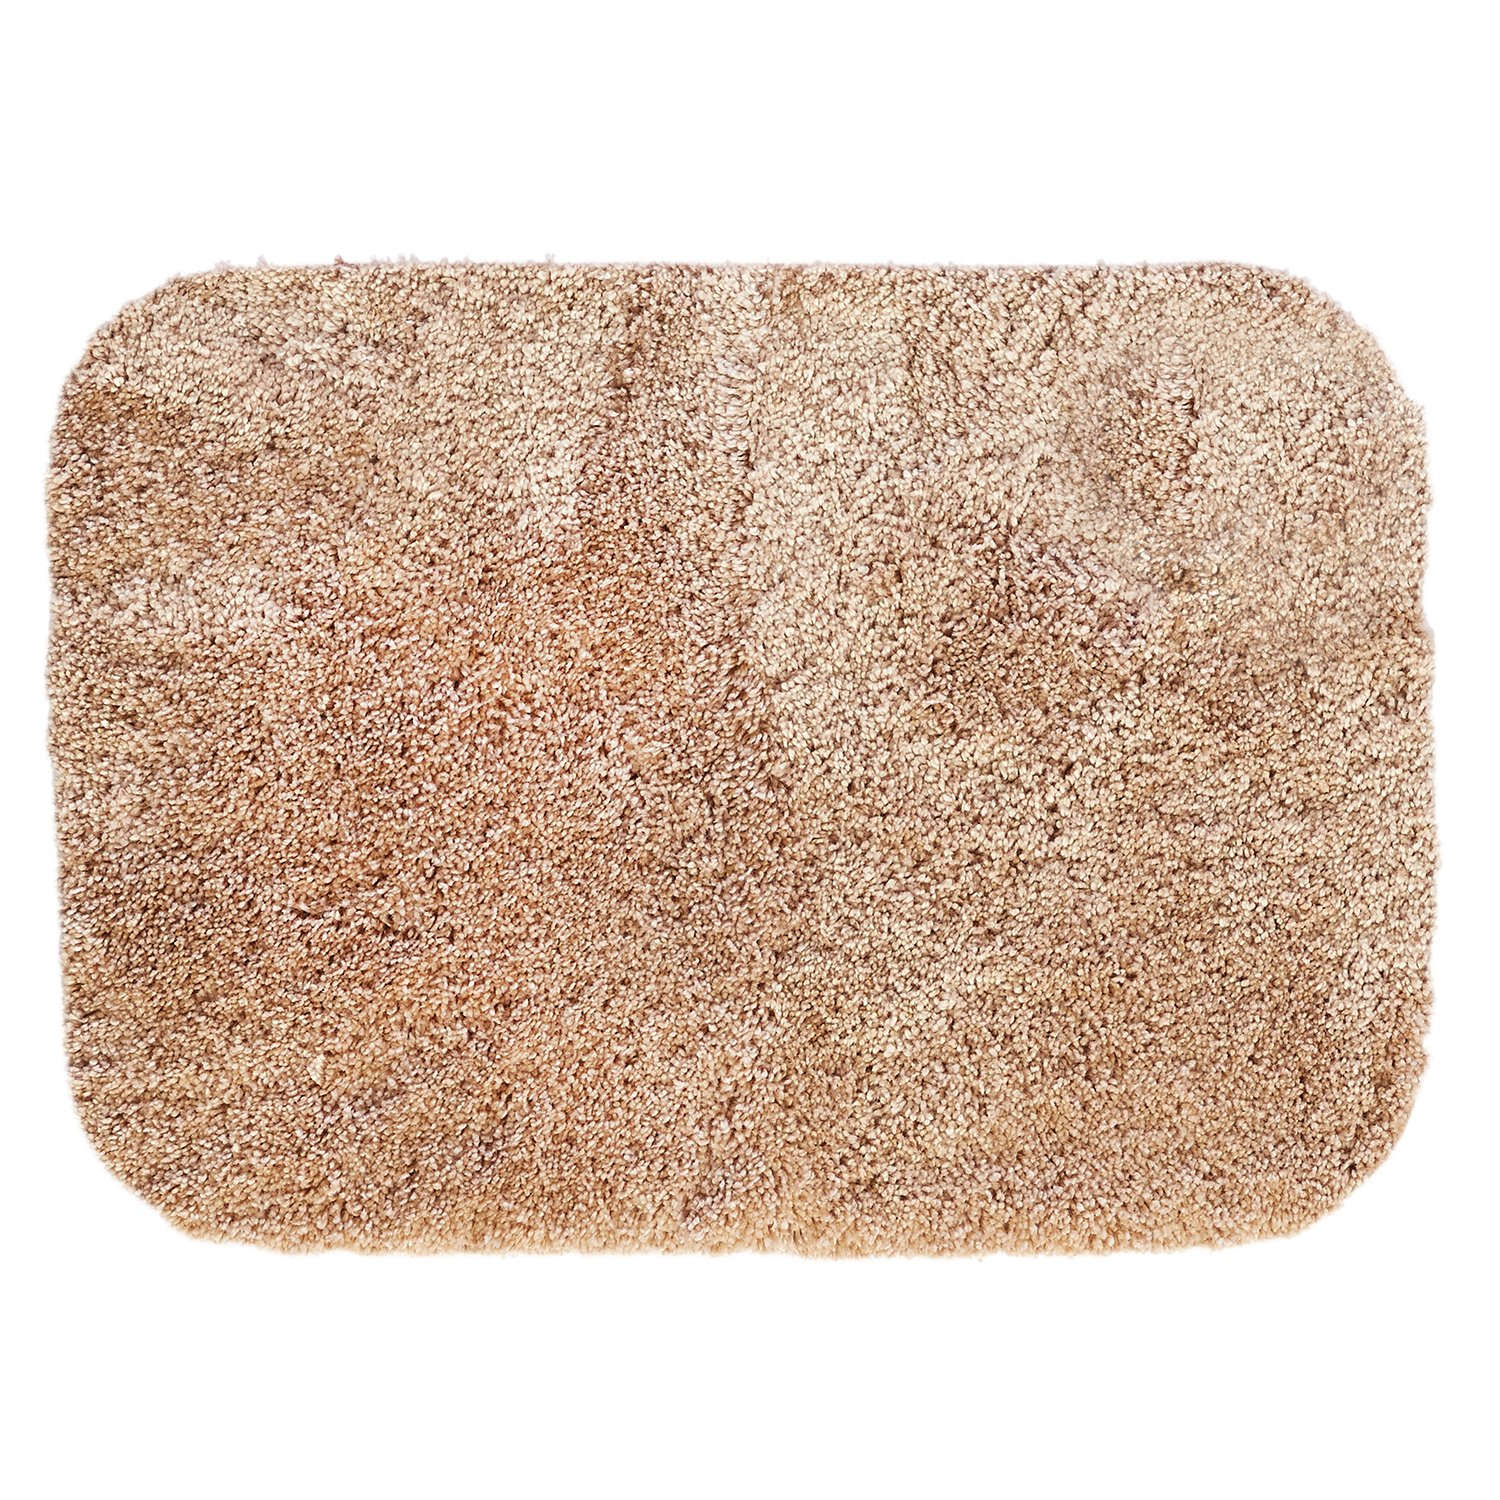 Mohawk Home Spa 1' 8'' x 2' 10'' Bath Rug in Sand